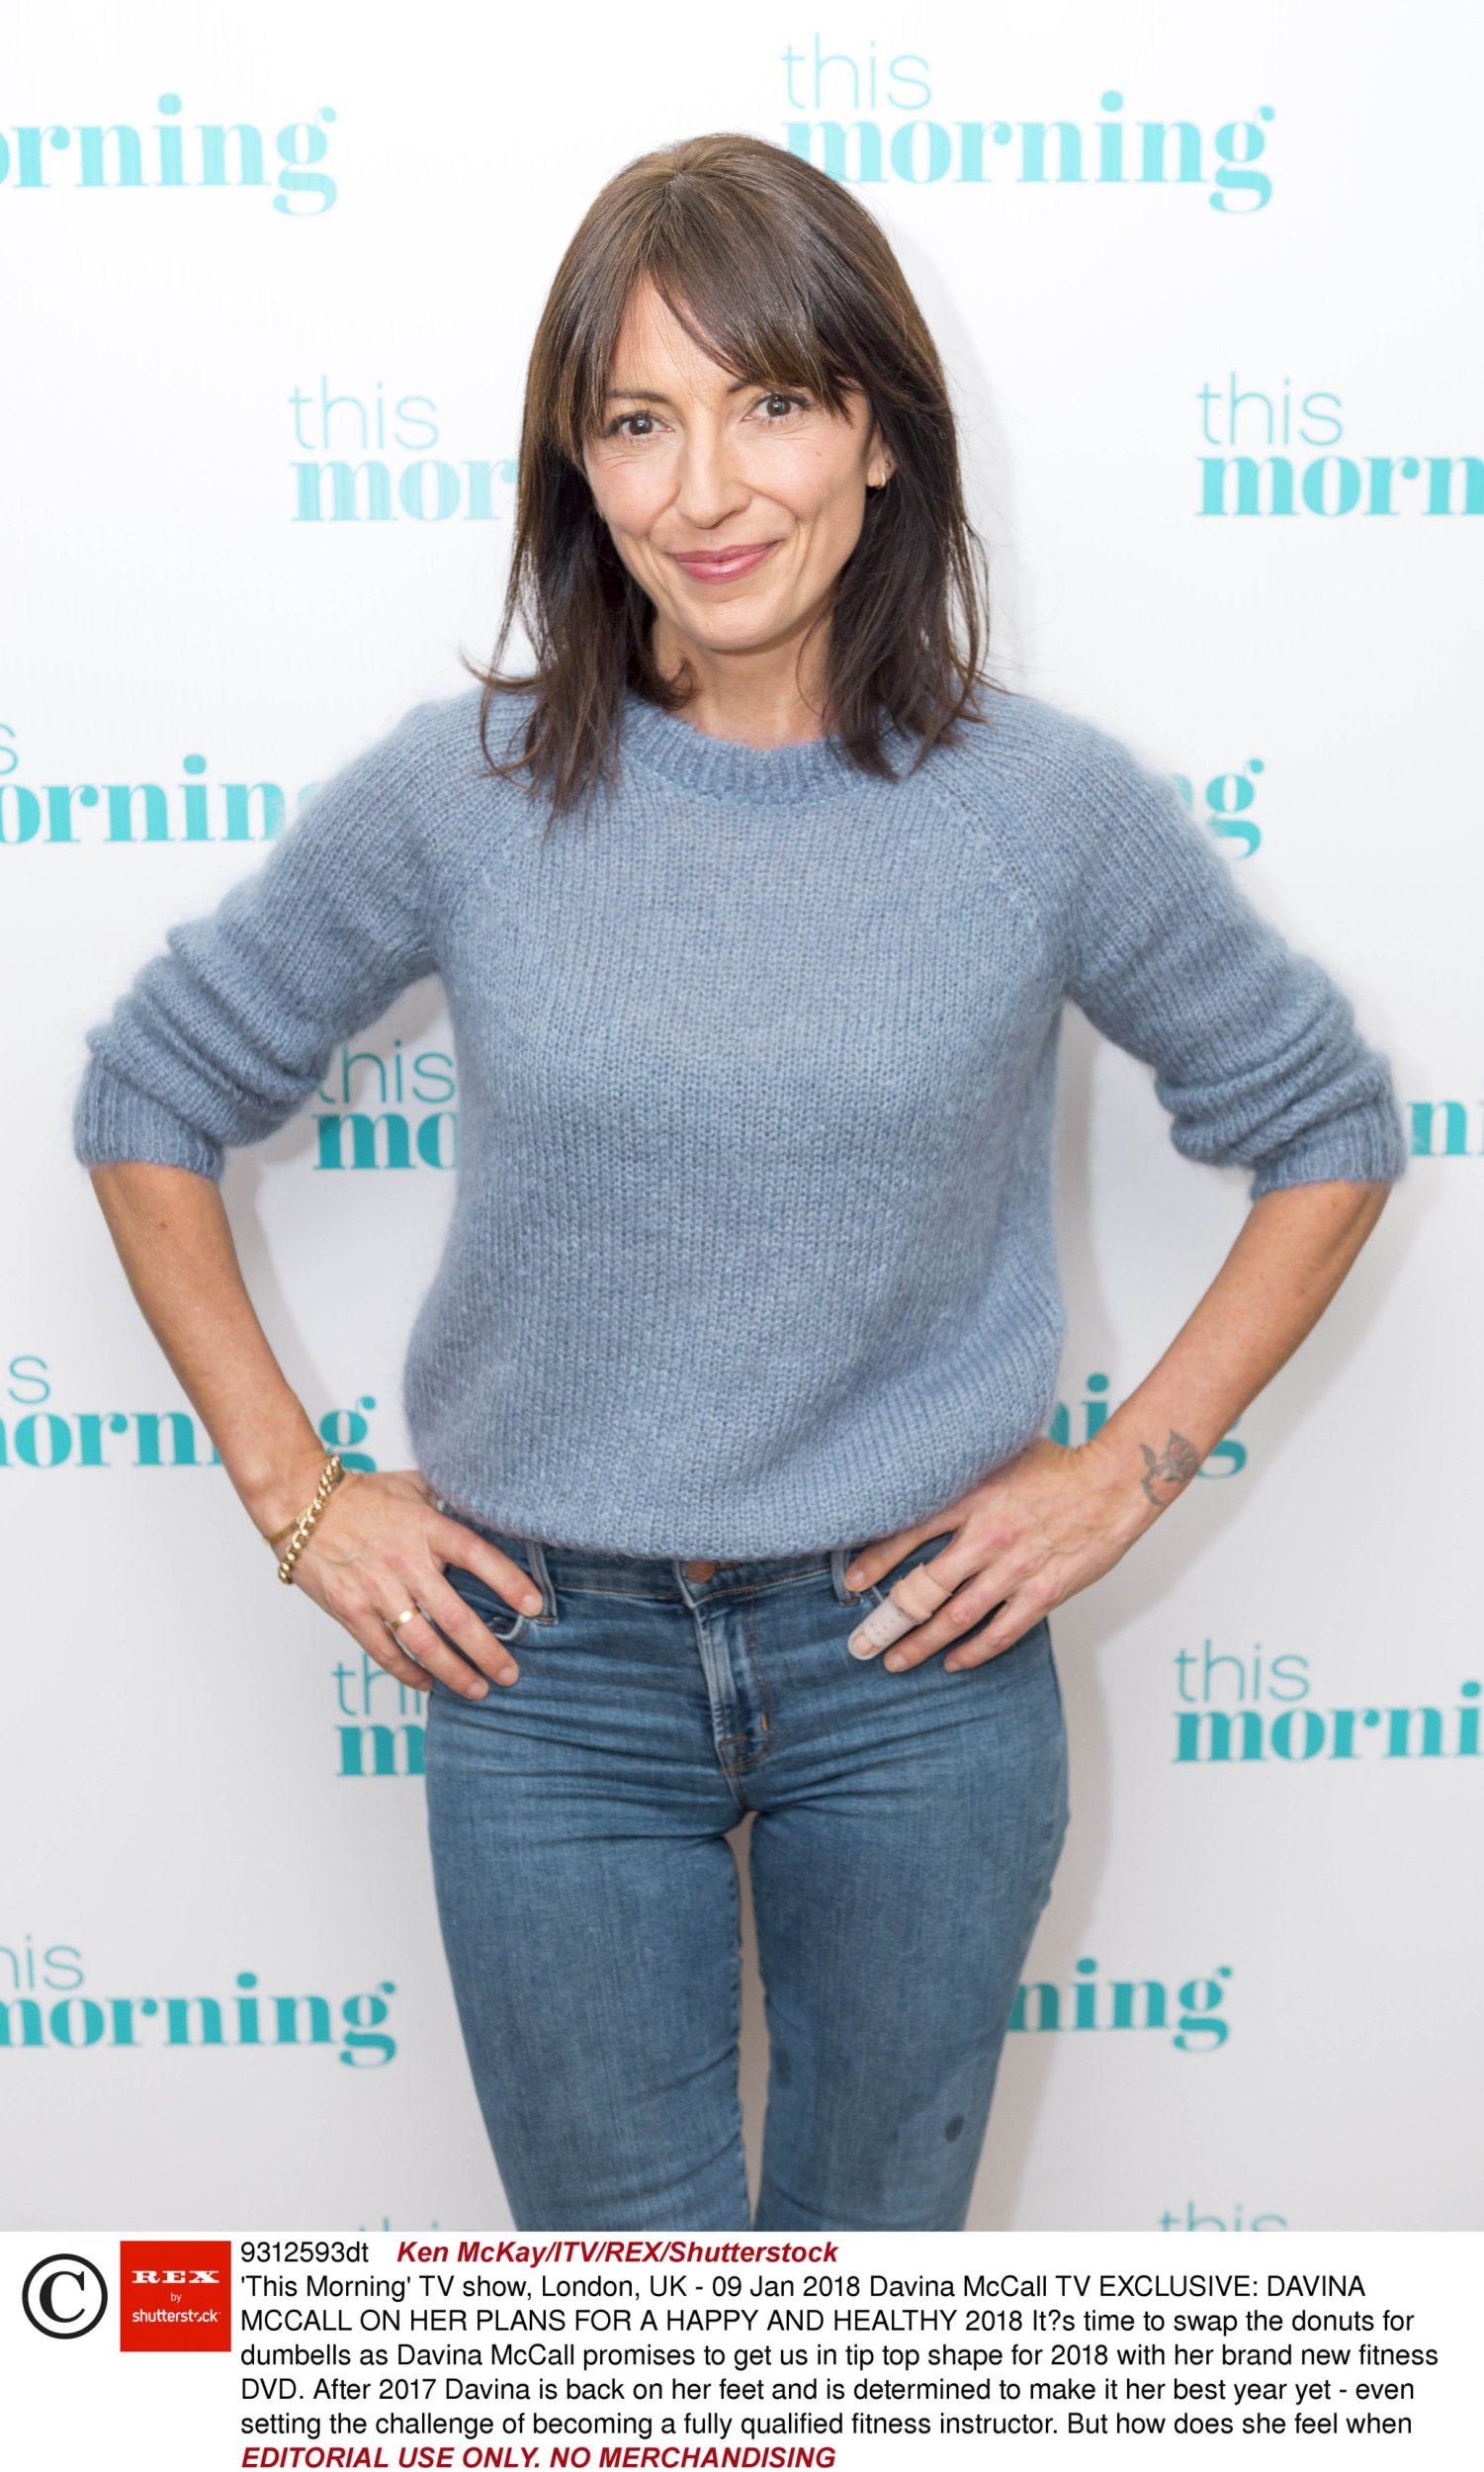 Behind Davina McCall's smile: Heartache, battling addiction and body shamers